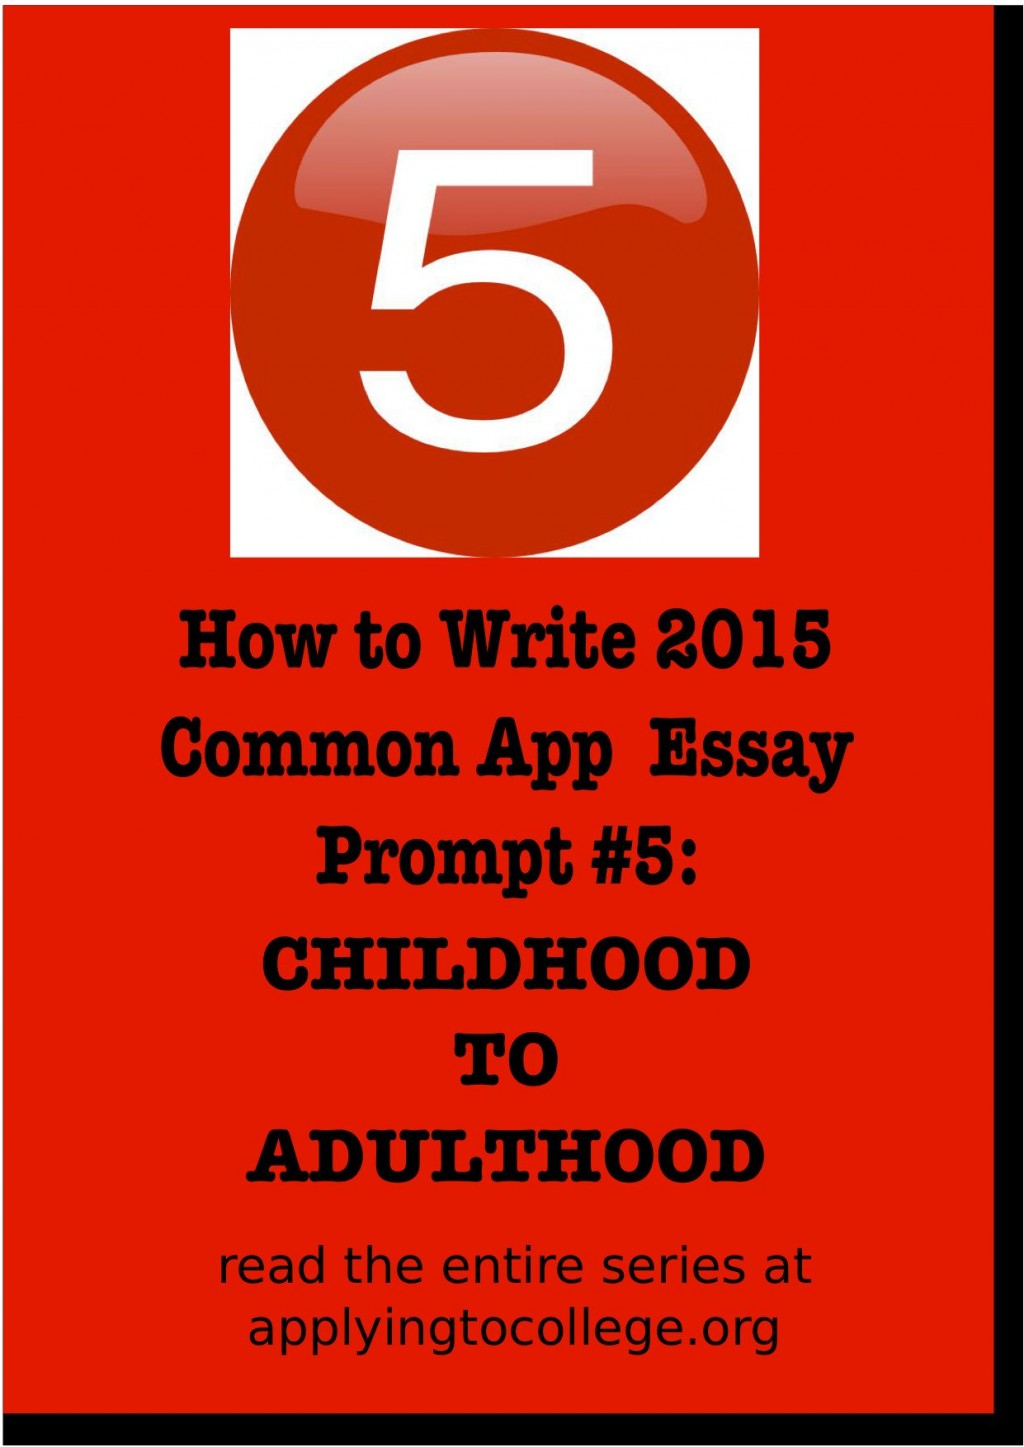 013 Essay Example Common App Unusual Prompt 1 Examples 3 4 Large